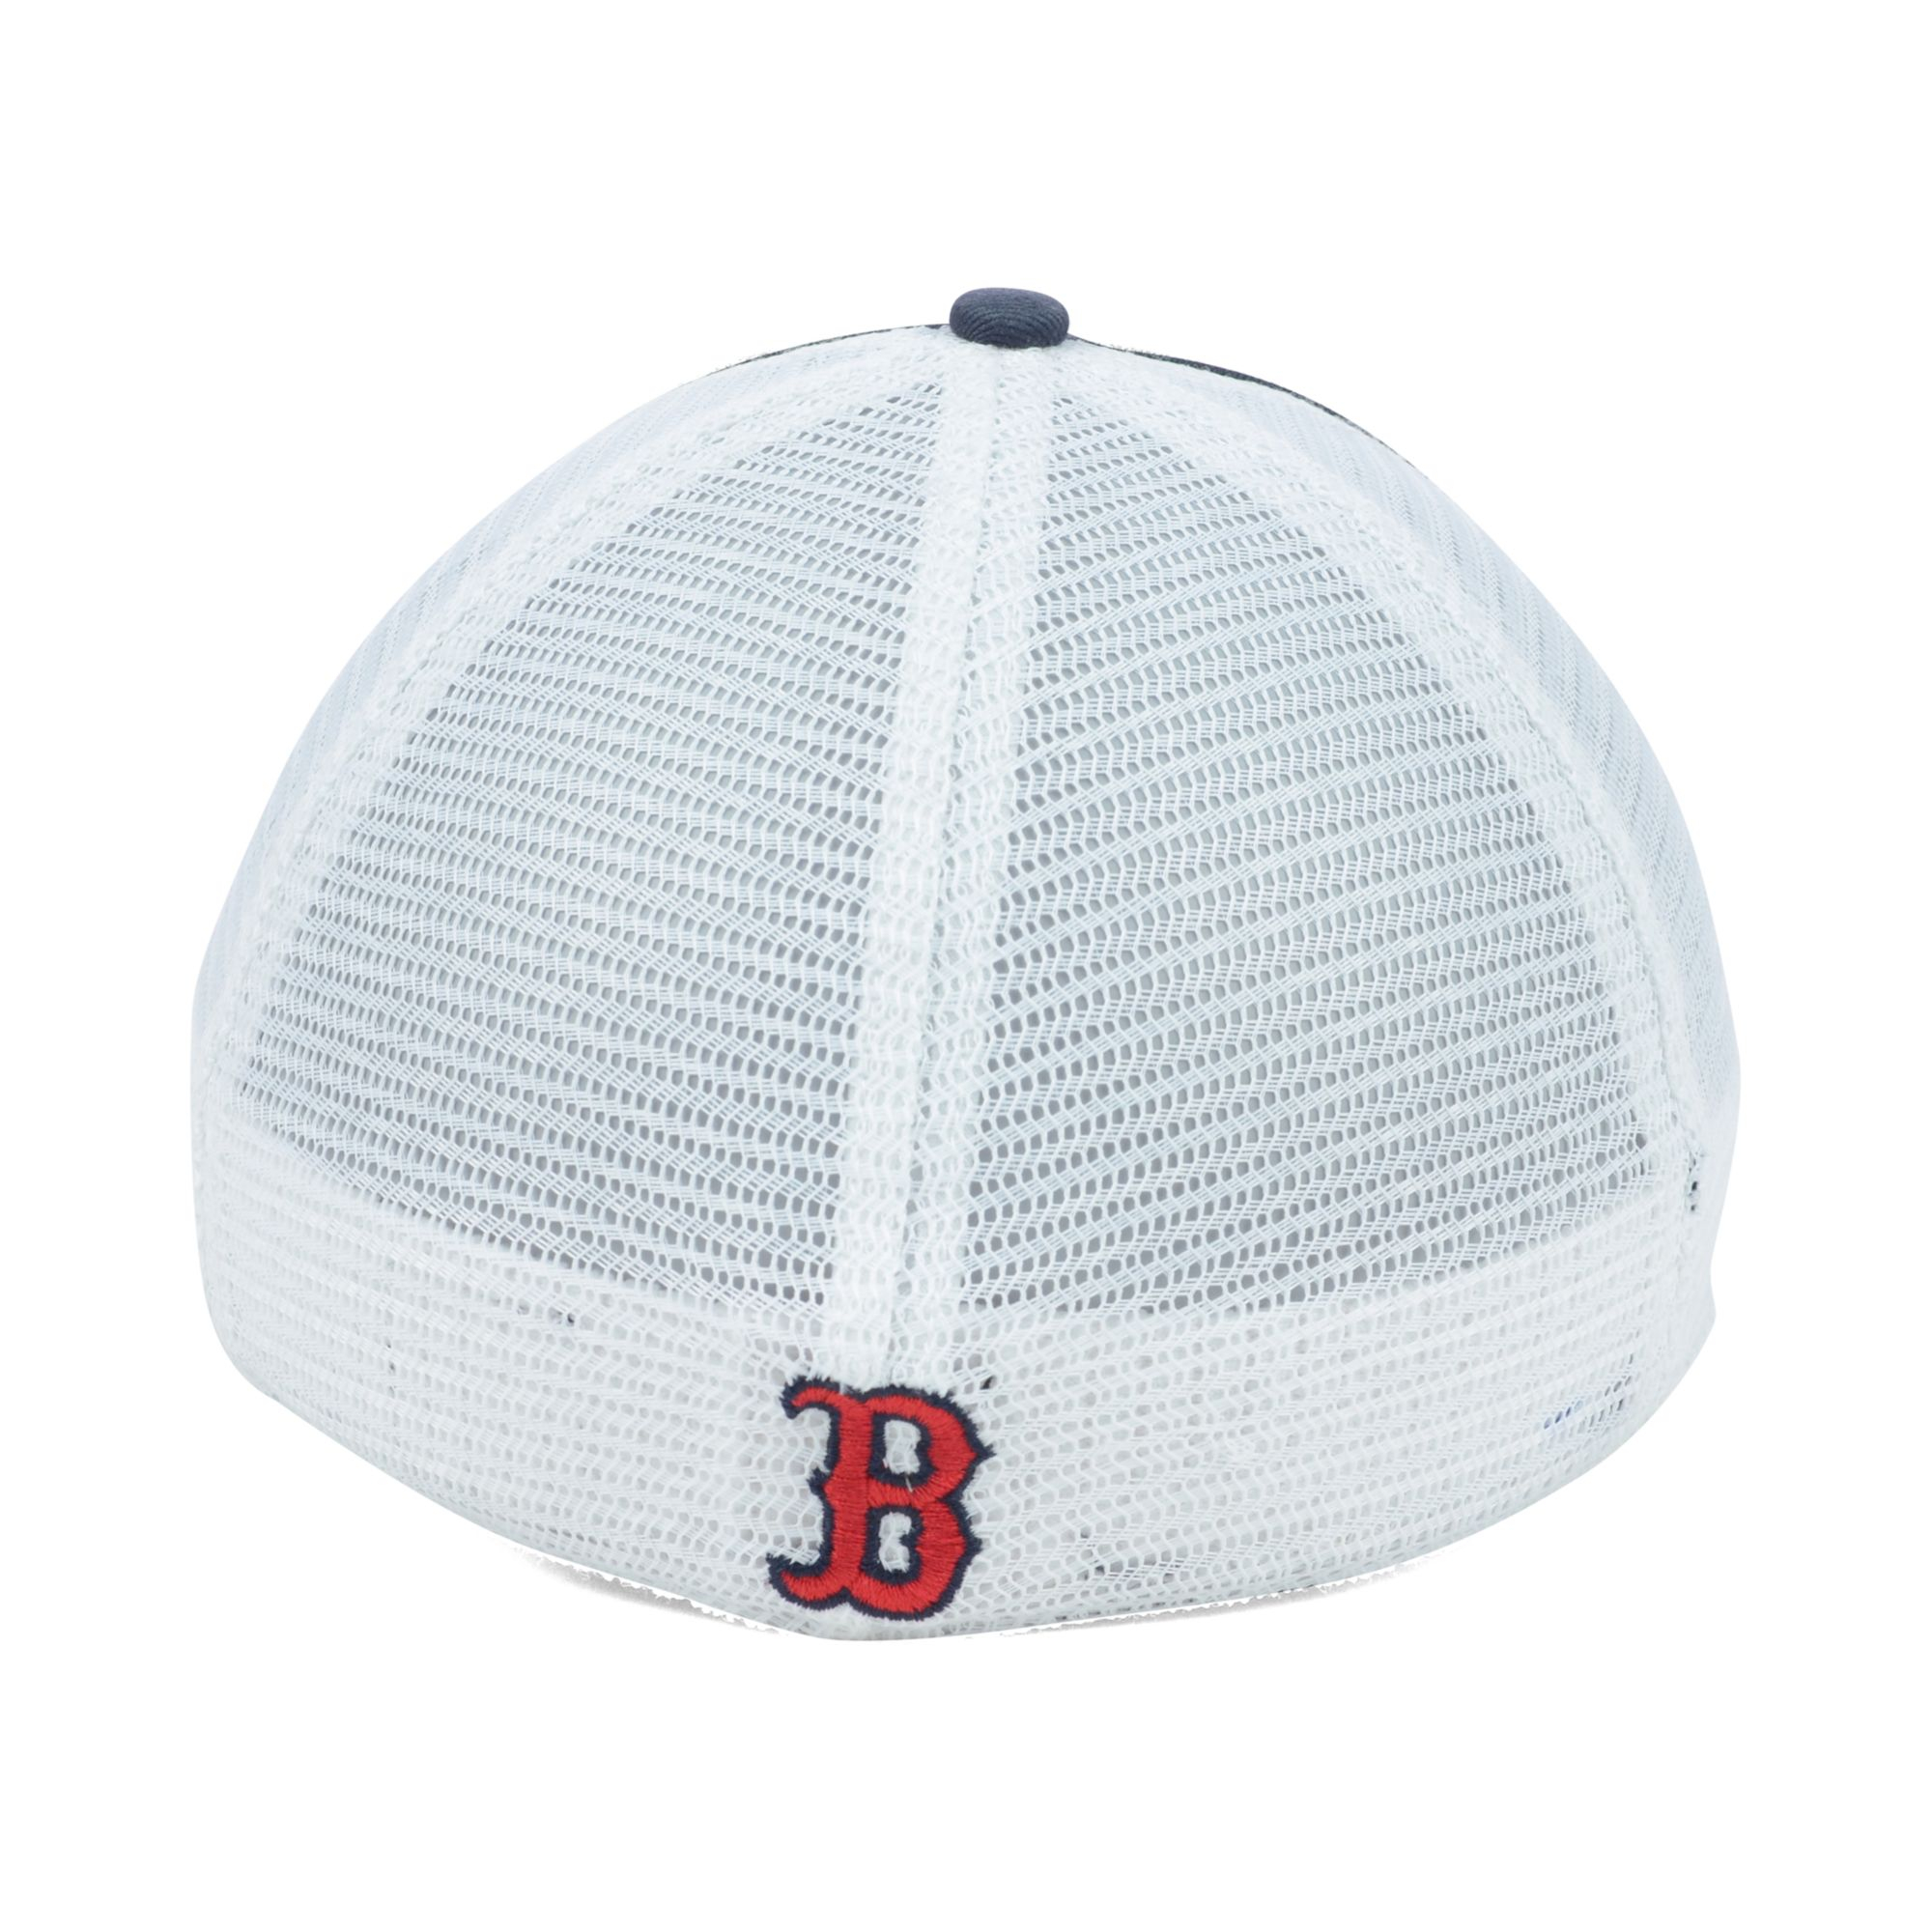 567b7cc3dbbbd ... low cost lyst 47 brand boston red sox blue mountain franchise cap in  blue 1e9fd 0cb81 purchase 2015 new ...